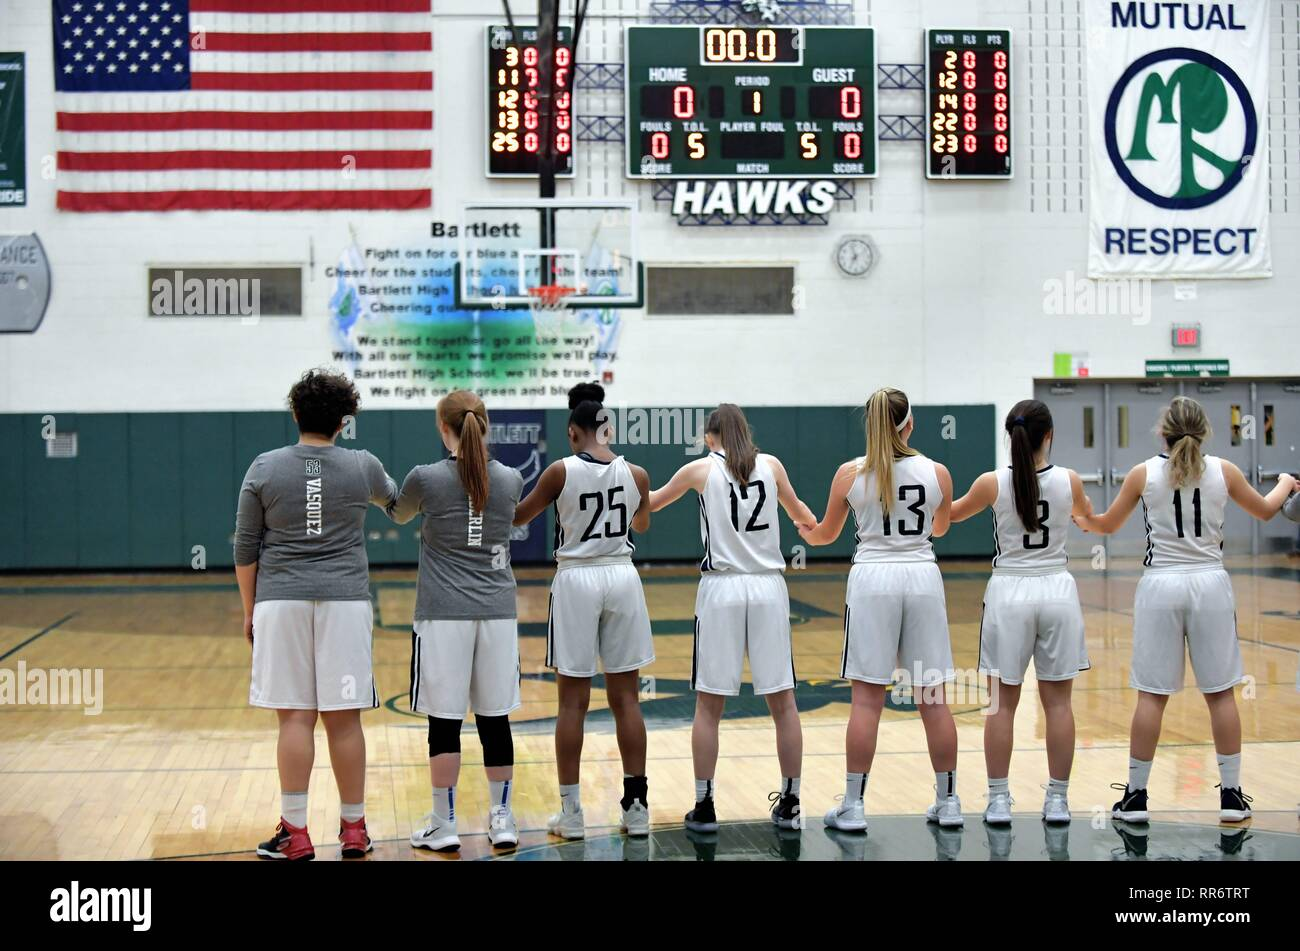 Prior to the start of their game, a team binds together during the playing of the 'National Anthem.' USA. - Stock Image